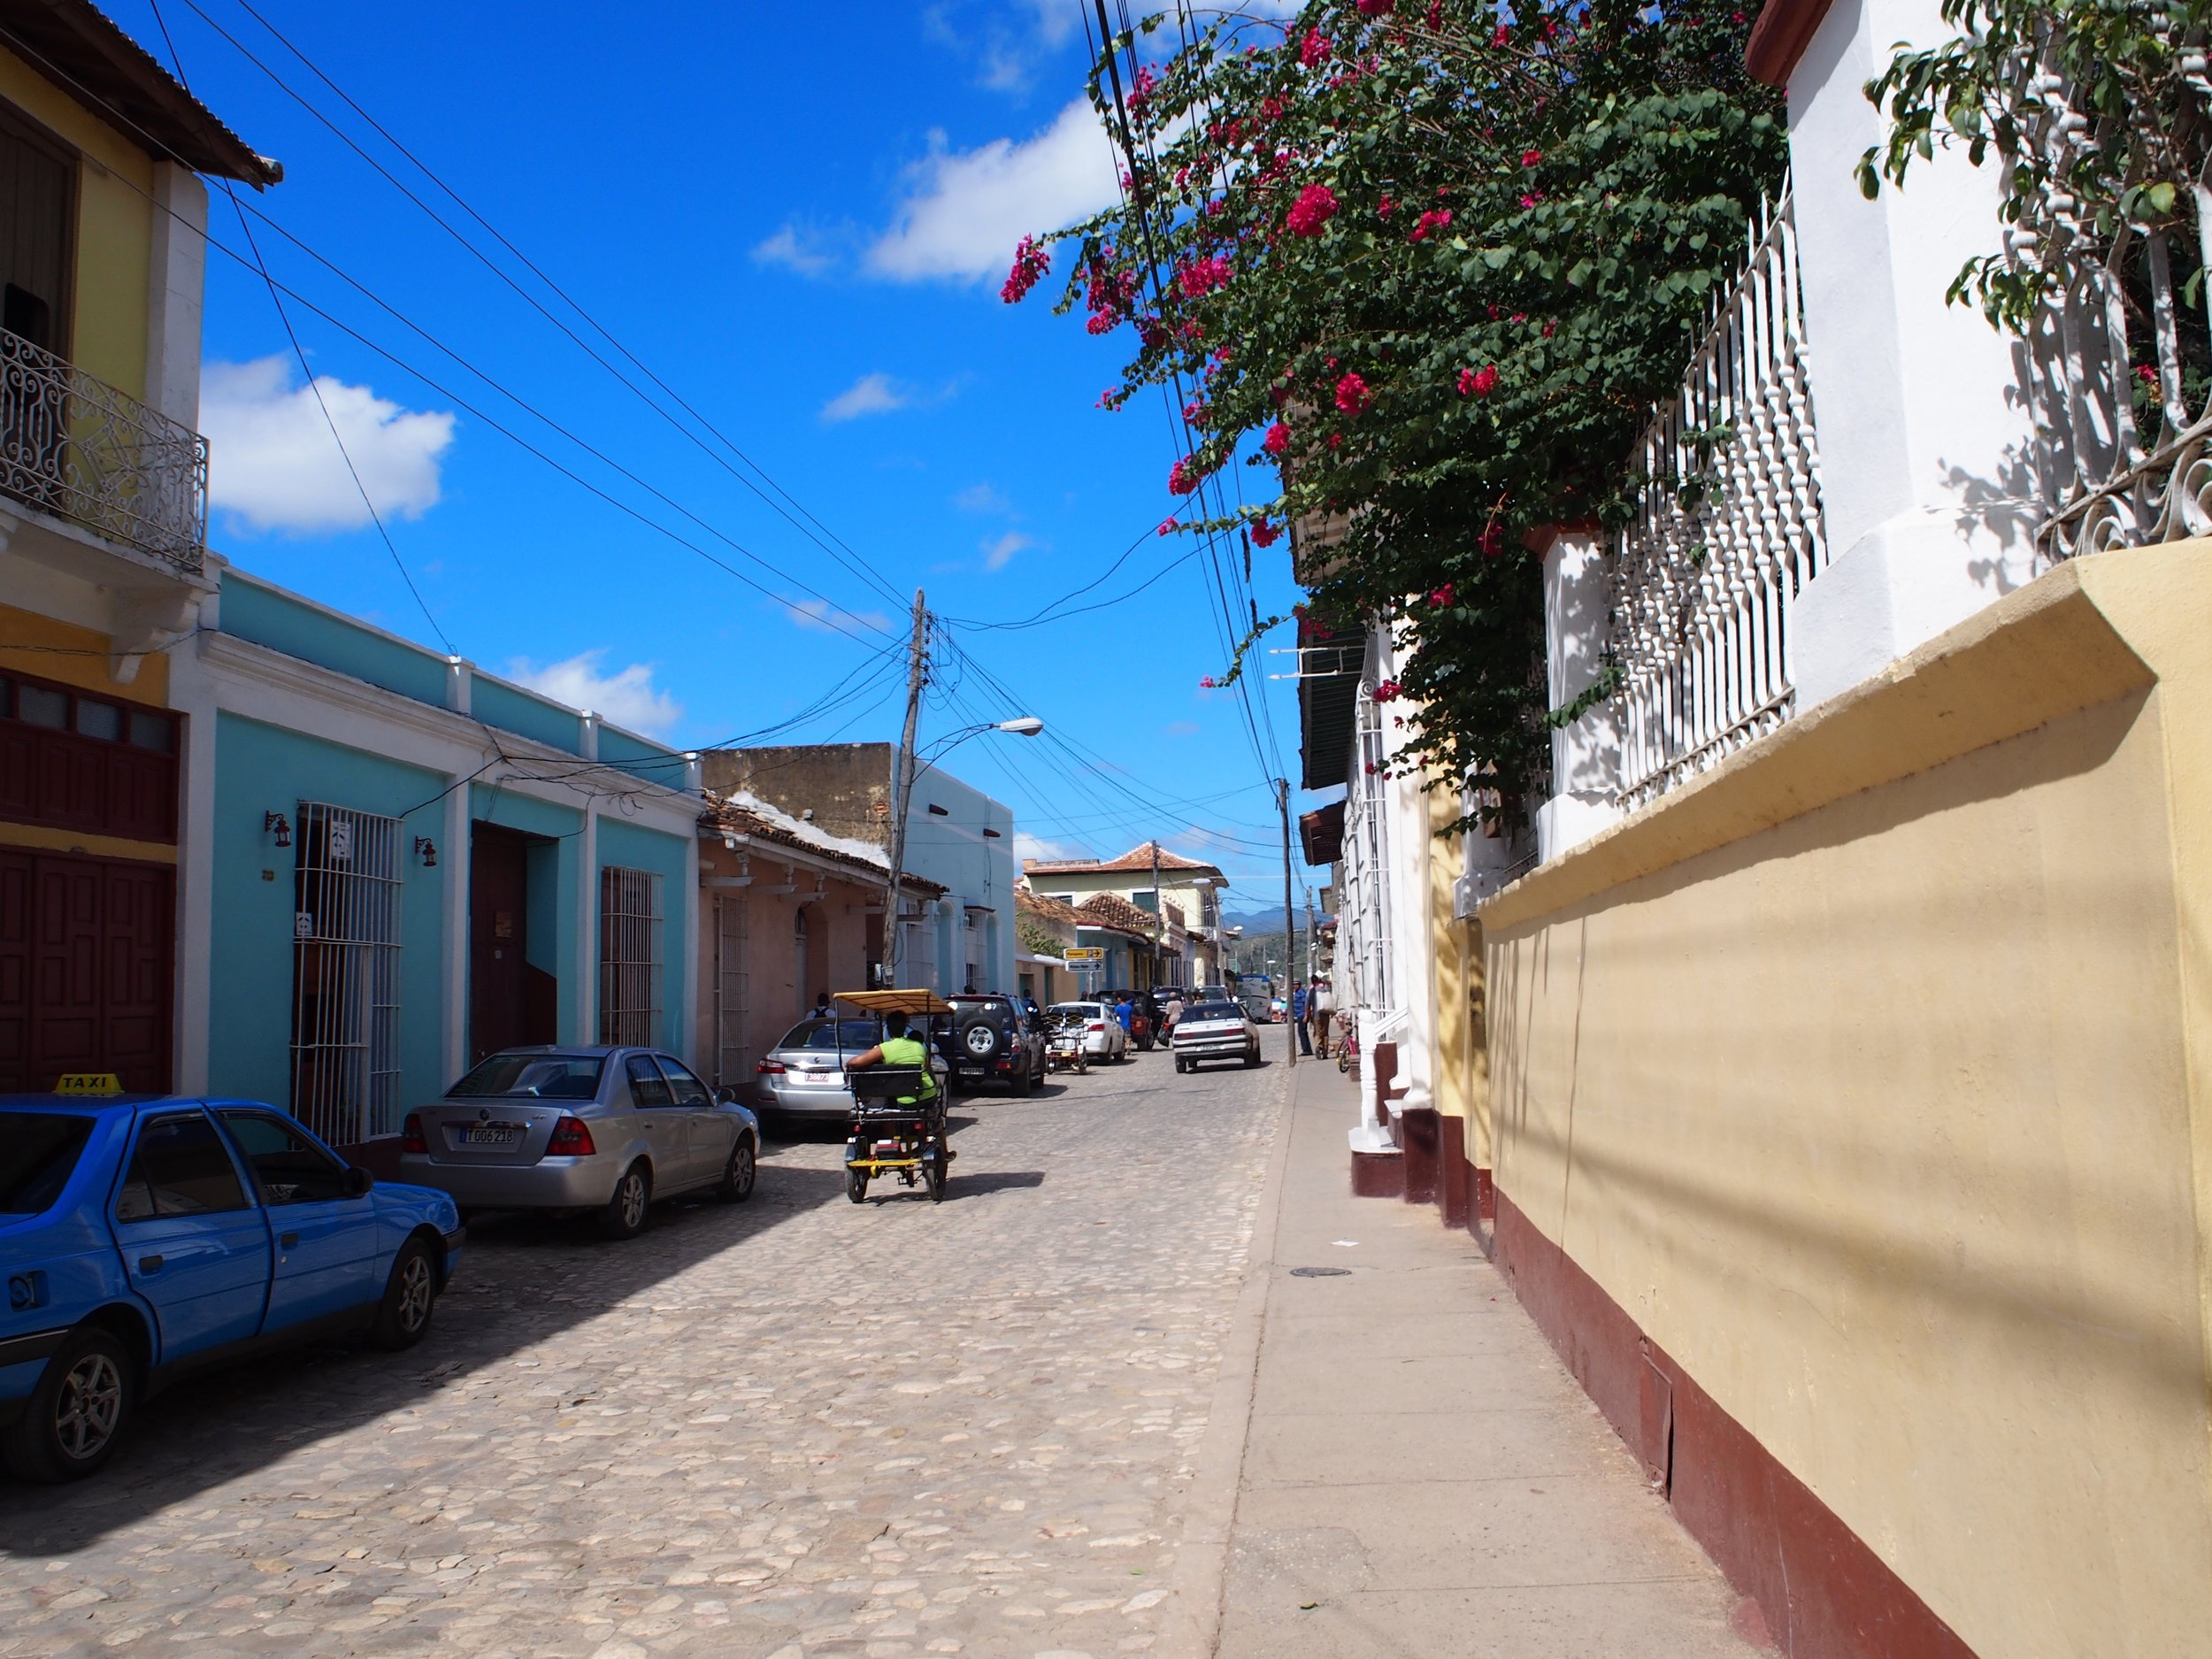 Picturesque streets of Trinidad